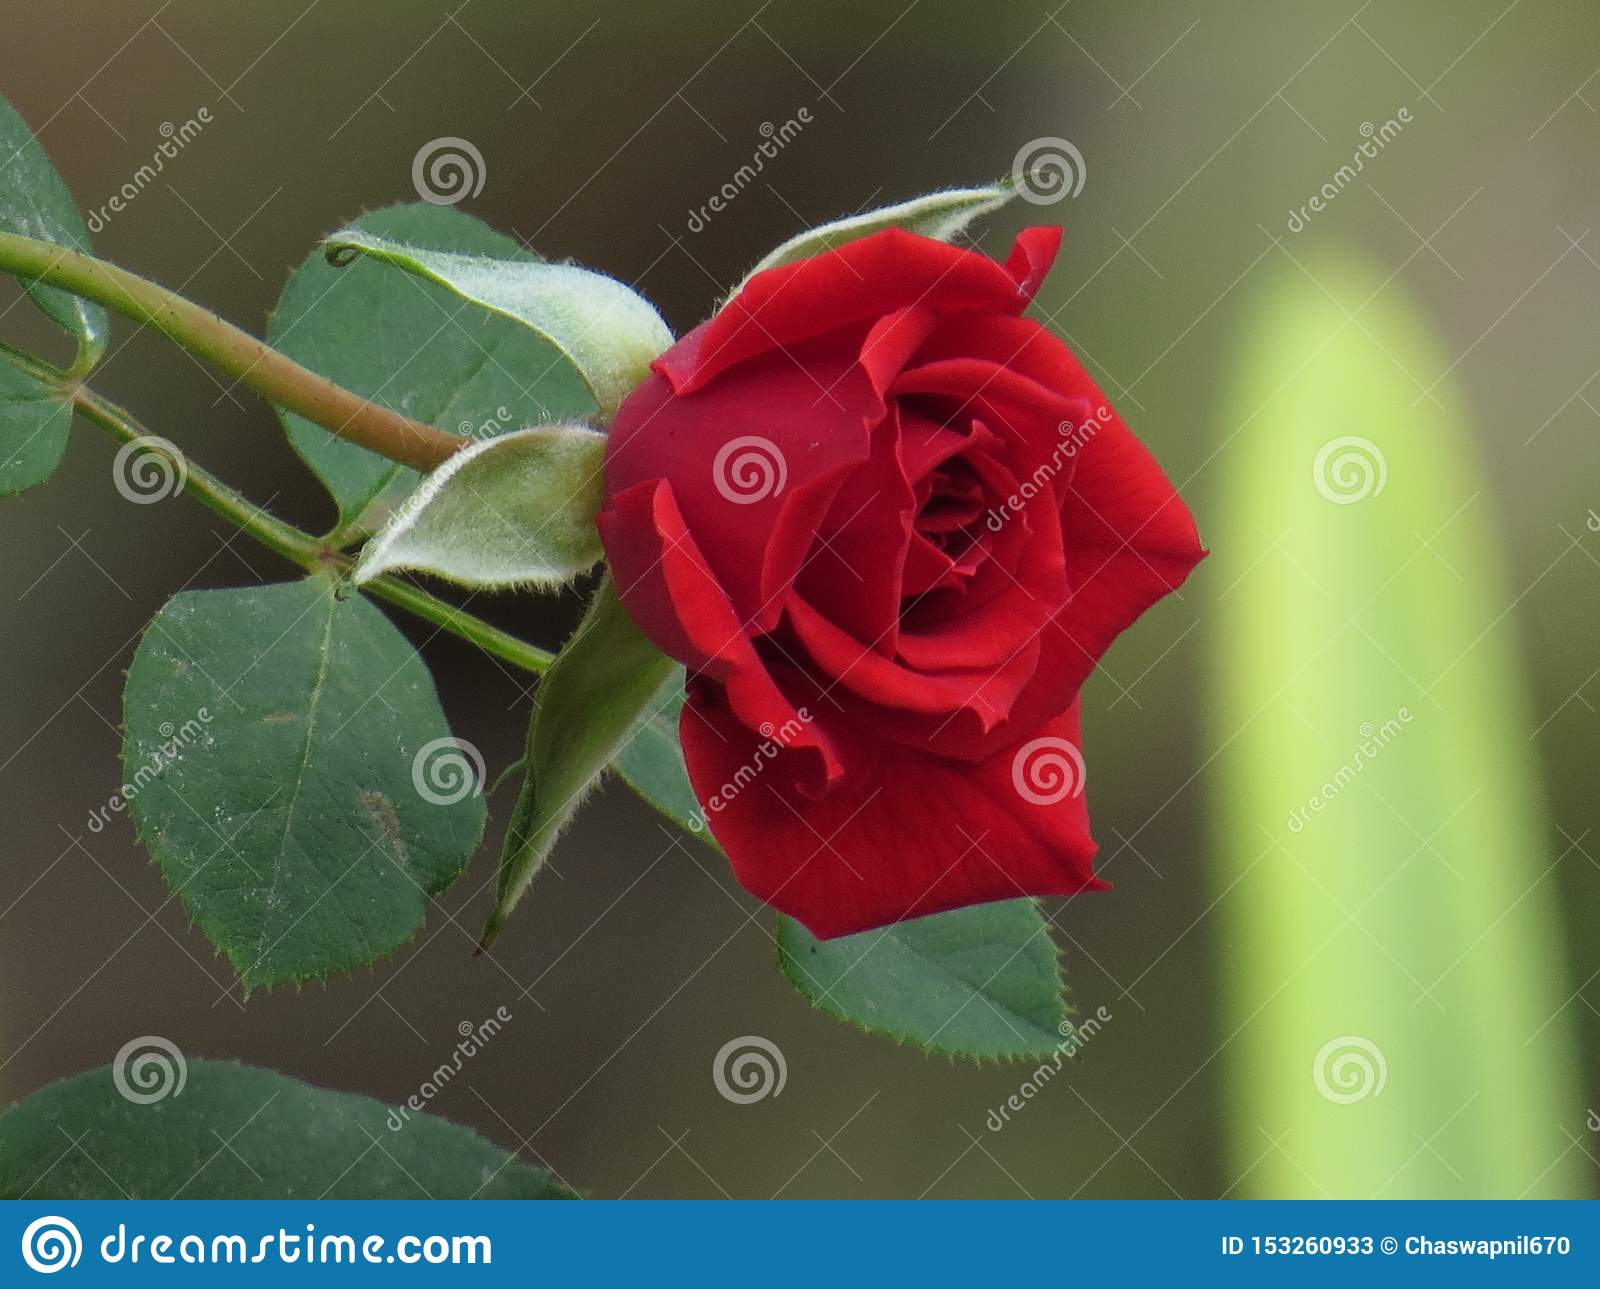 Red Rose Flower with green leaves